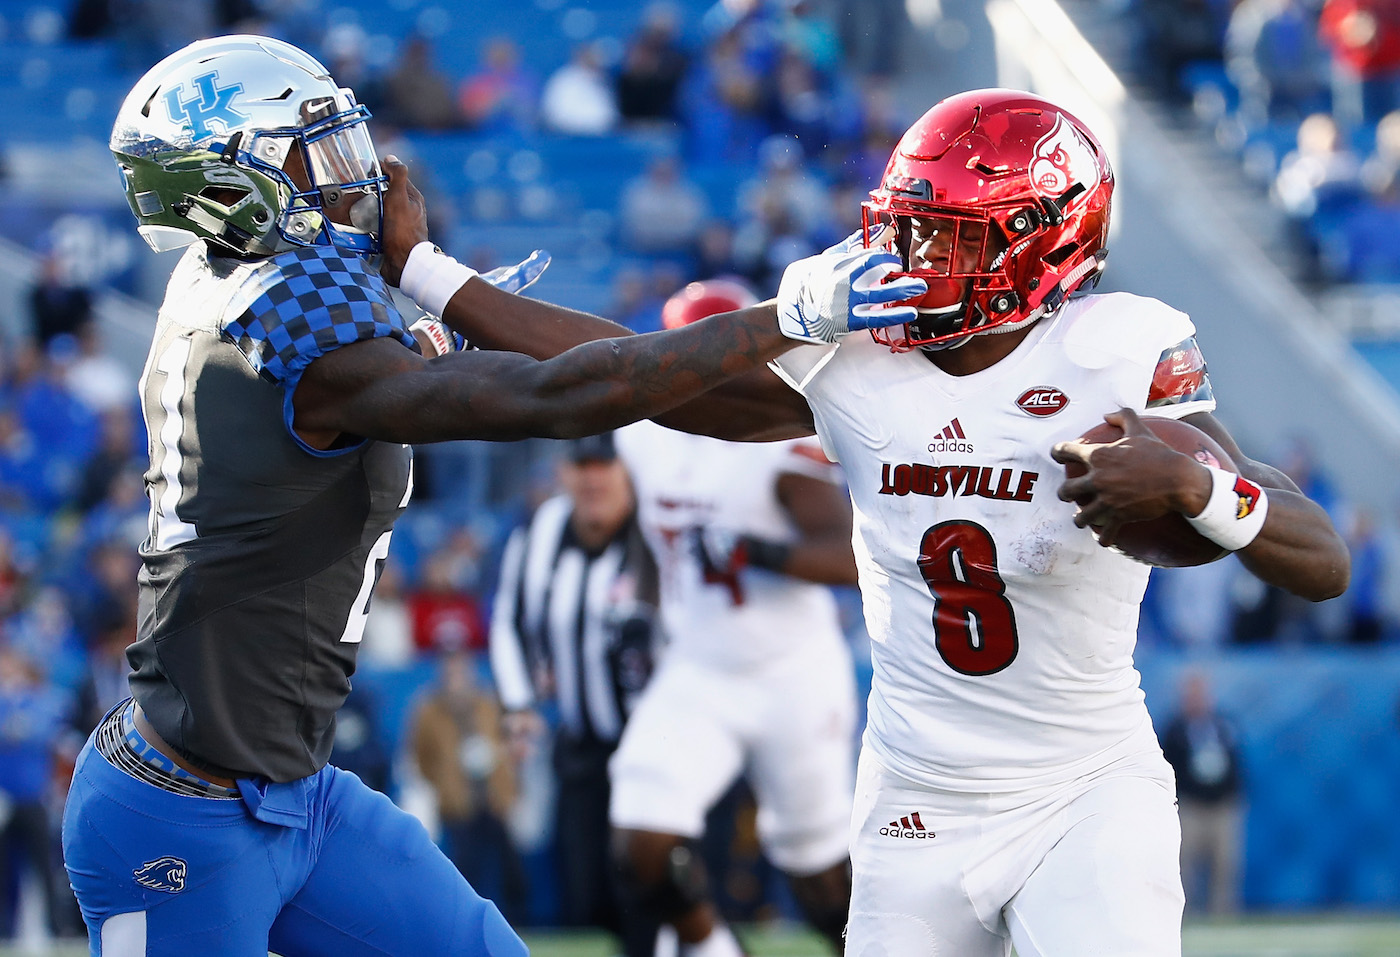 Lamar Jackson denies reports, adament he is 'strictly a quarterback'